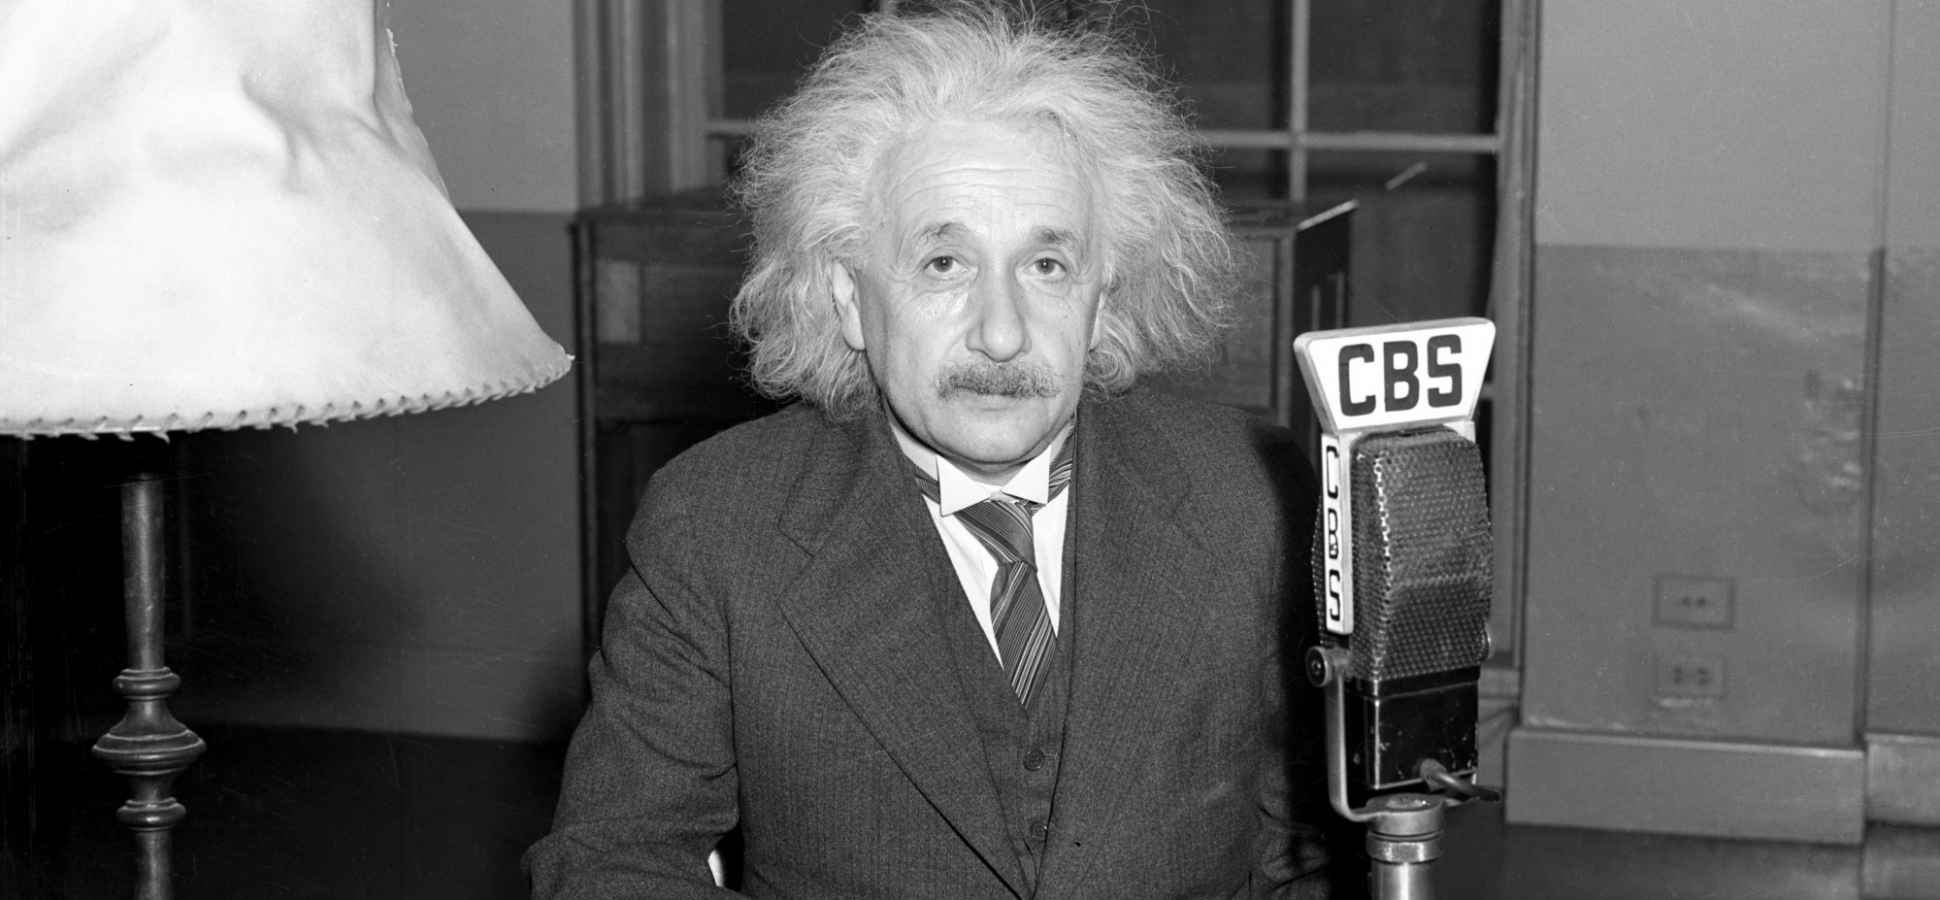 How to Become an Einstein or Da Vinci: 4 Steps to Mastering Your Craft